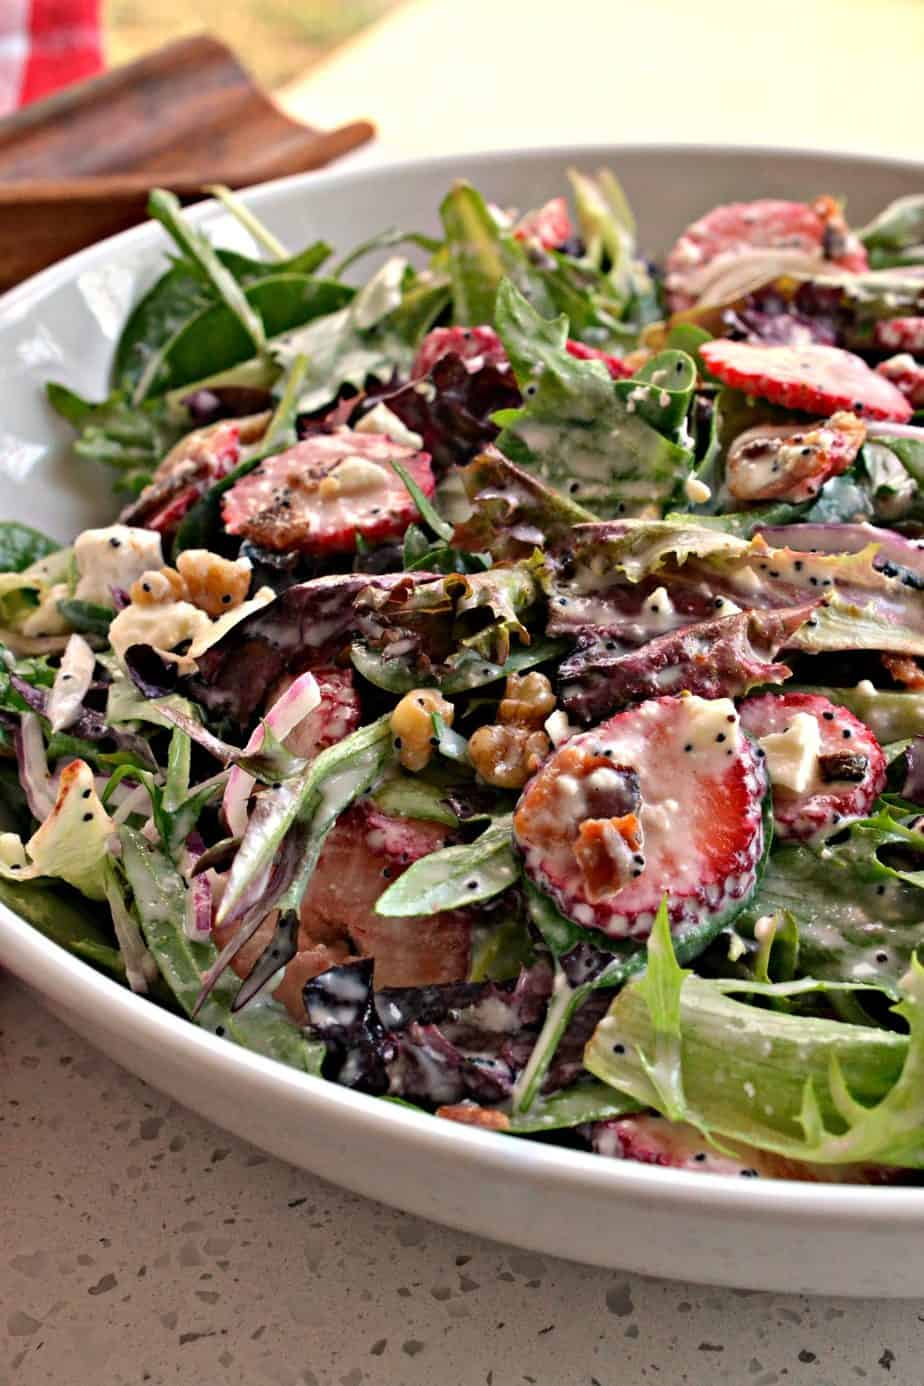 This Strawberry Spinach Salad with homemade poppy seed dressing is always a hit for spring and summer gatherings.